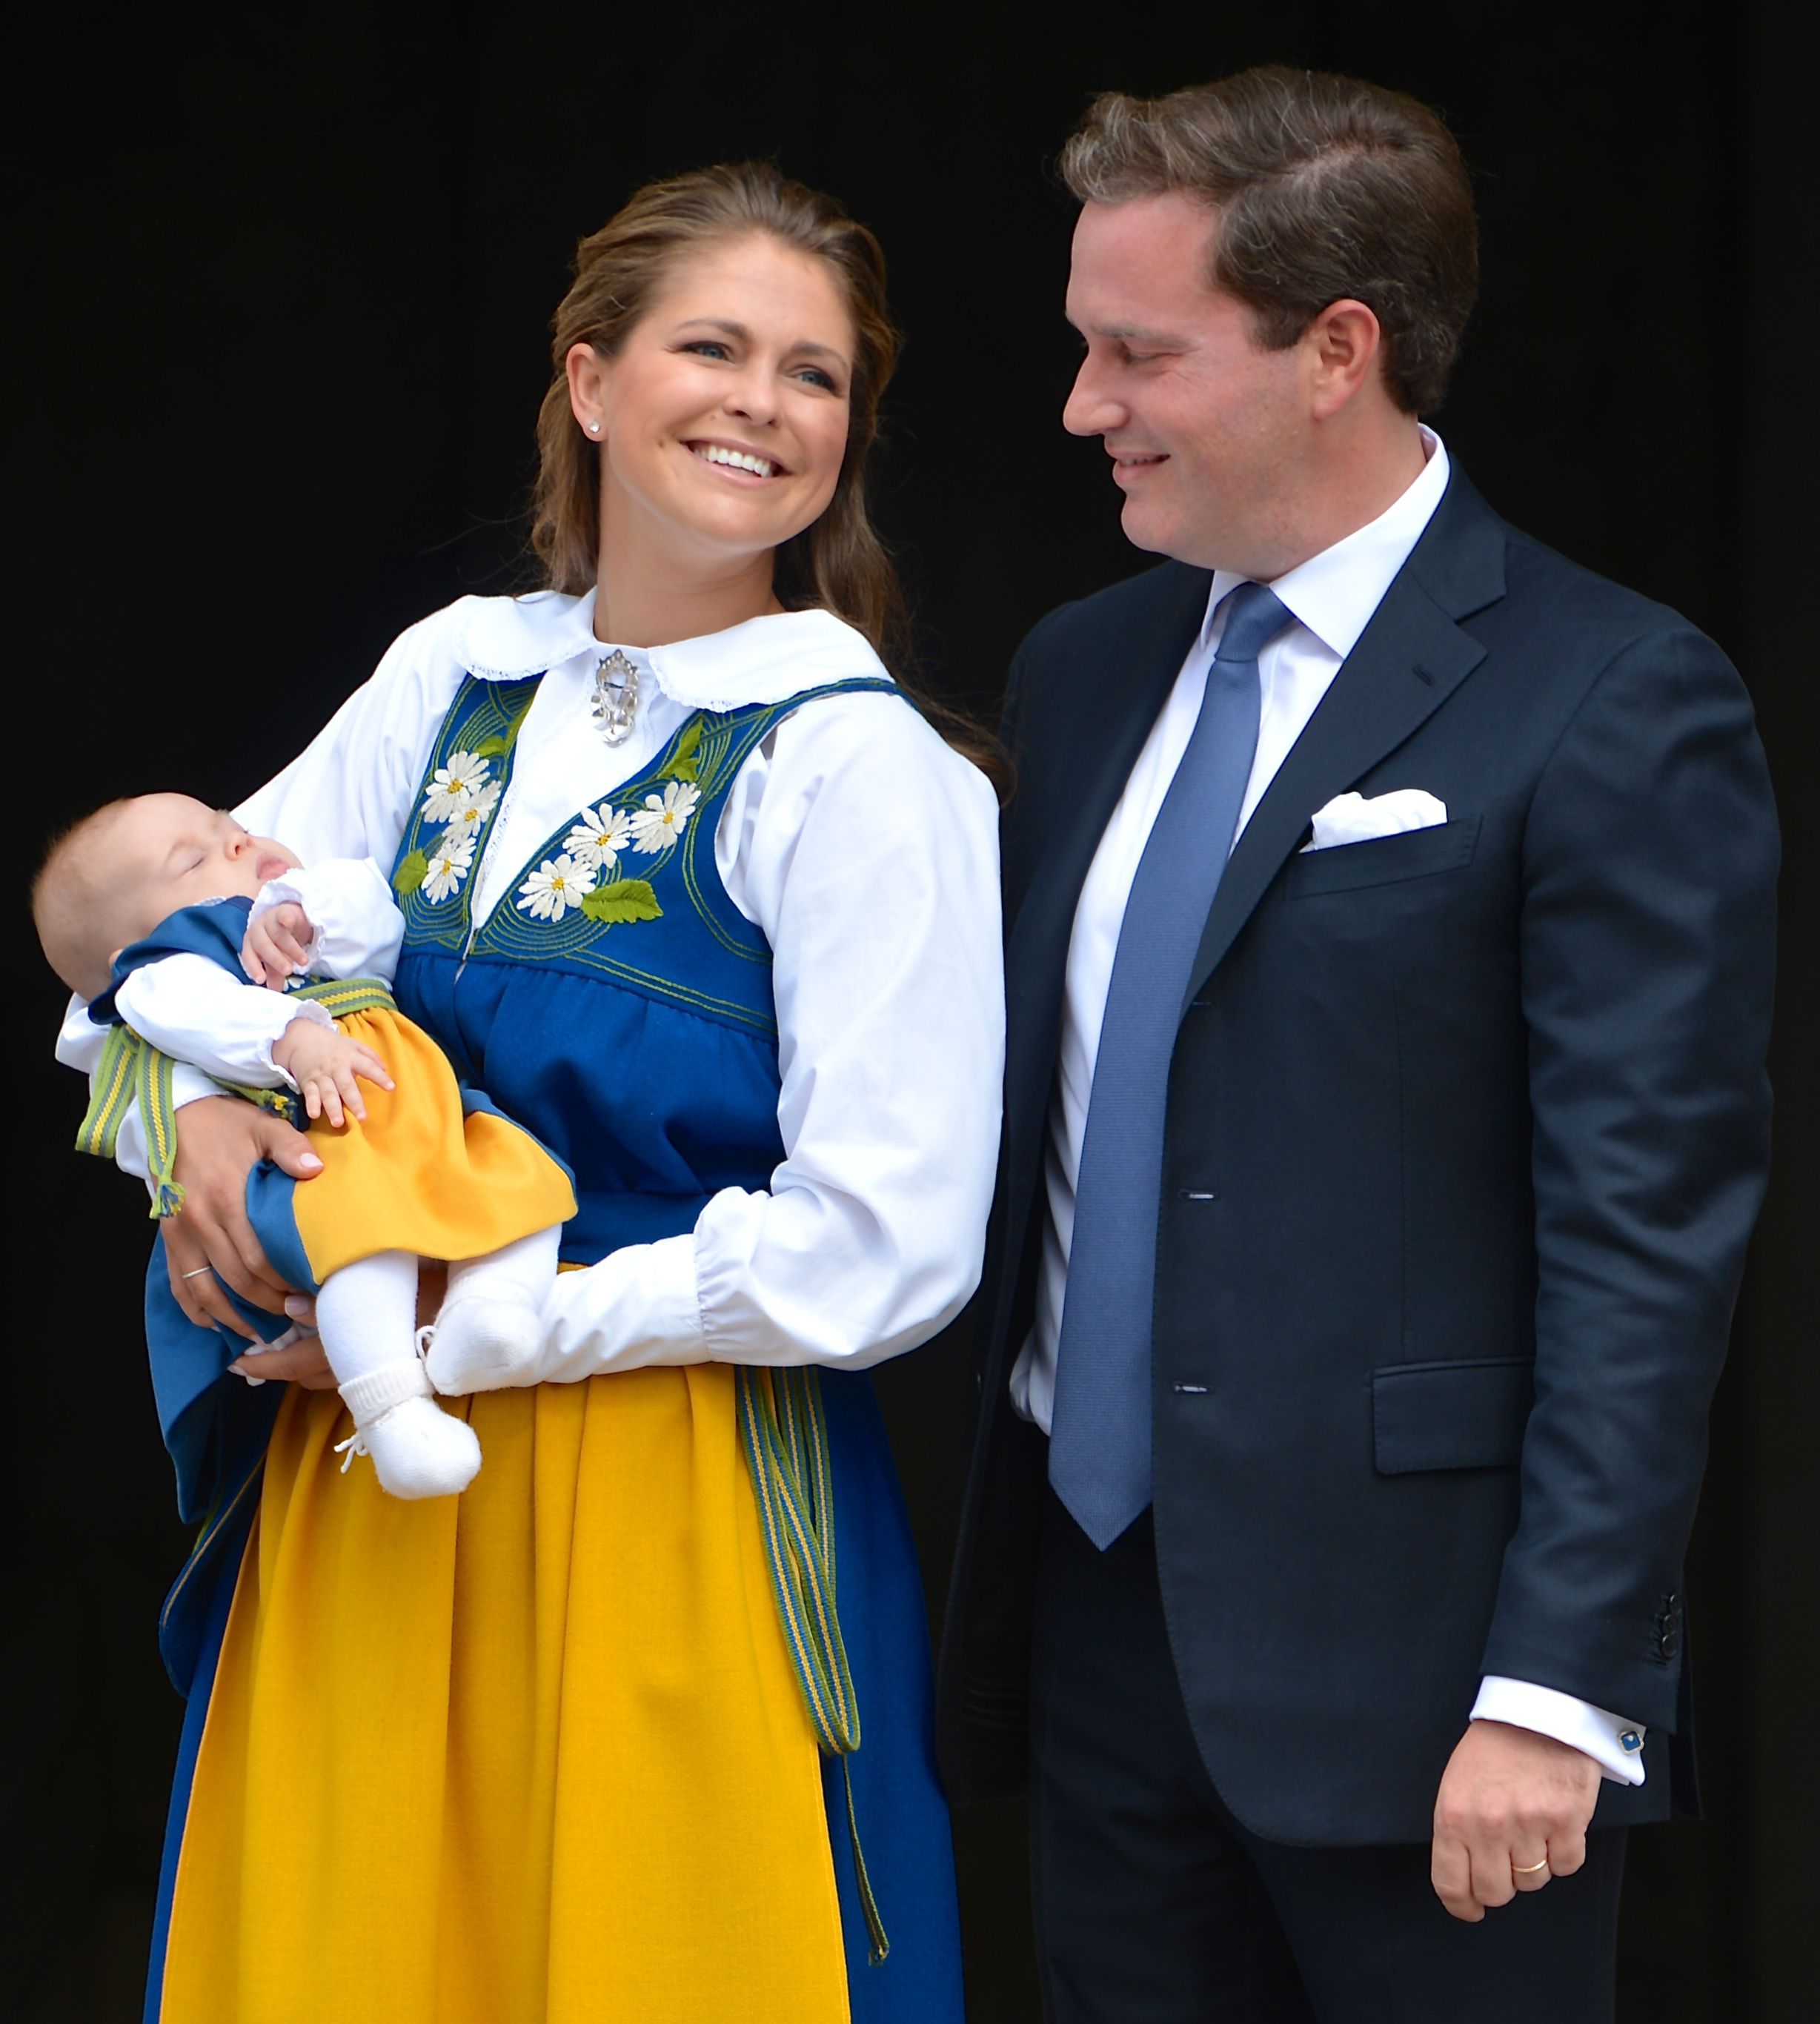 Madeleine and Chris present Leonore to the Swedish people for the first time. Chris also wiggled Leonore's toes. It was precious.